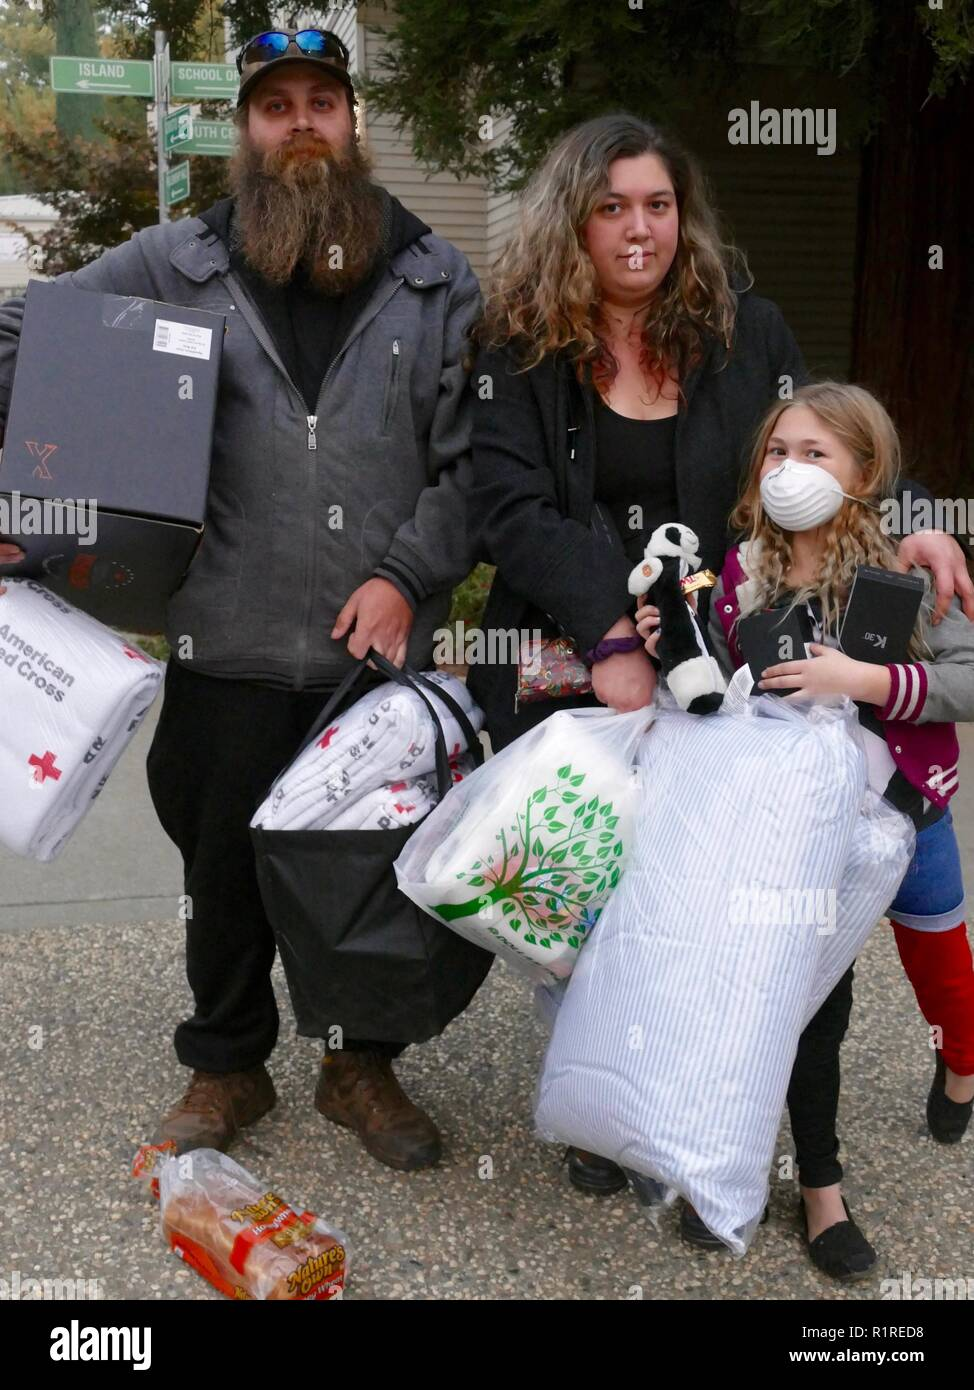 Paradise, USA. 13th Nov, 2018. Sierra Strongheart, her friend Jason Woods and daughter Brooke, a family from Paradise, stocked up on donations after the forest fire, the so-called 'camp' fire, lost their belongings. (to dpa 'Paradise as hell on earth - 'Will create a new church' of 14.11.2018) Credit: Barbara Munker/dpa/Alamy Live News - Stock Image